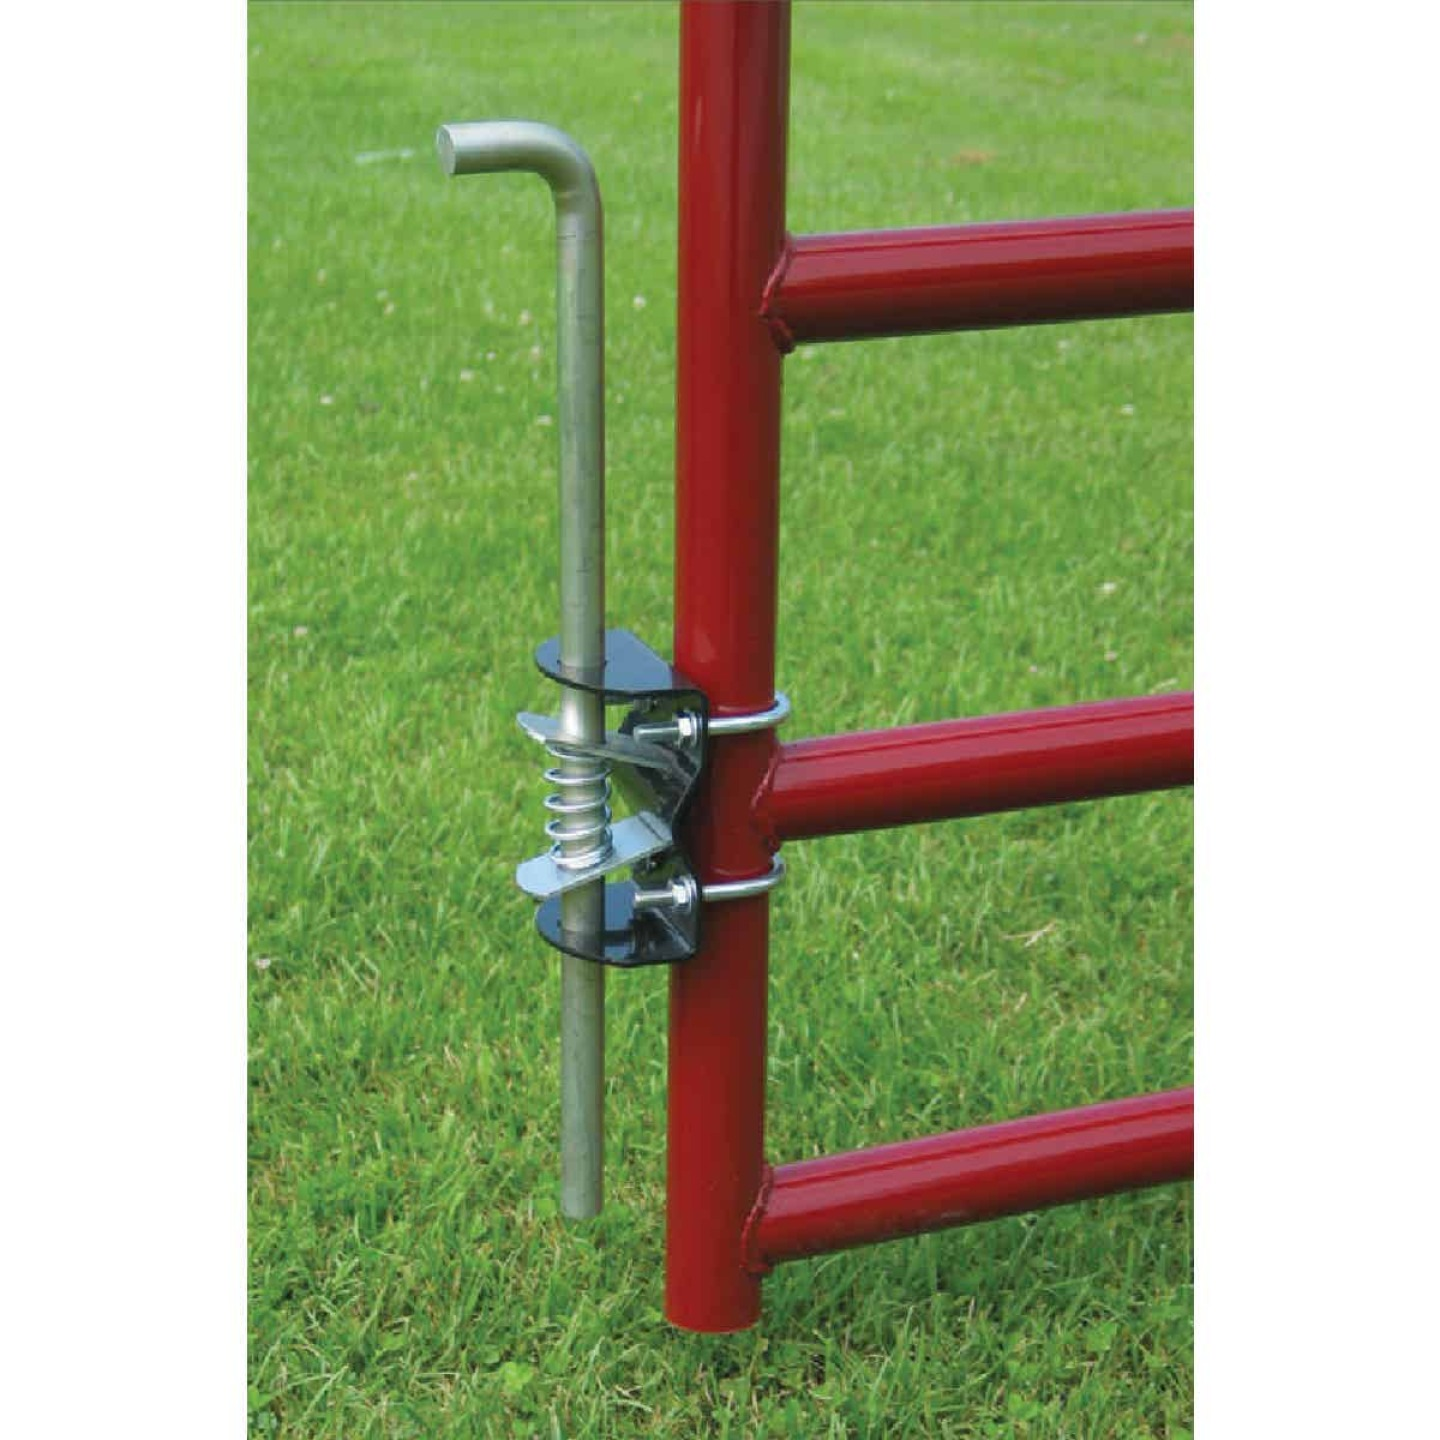 Speeco 1-3/4 In. to 2 In. Dia. Red Steel Gate Anchor Image 2